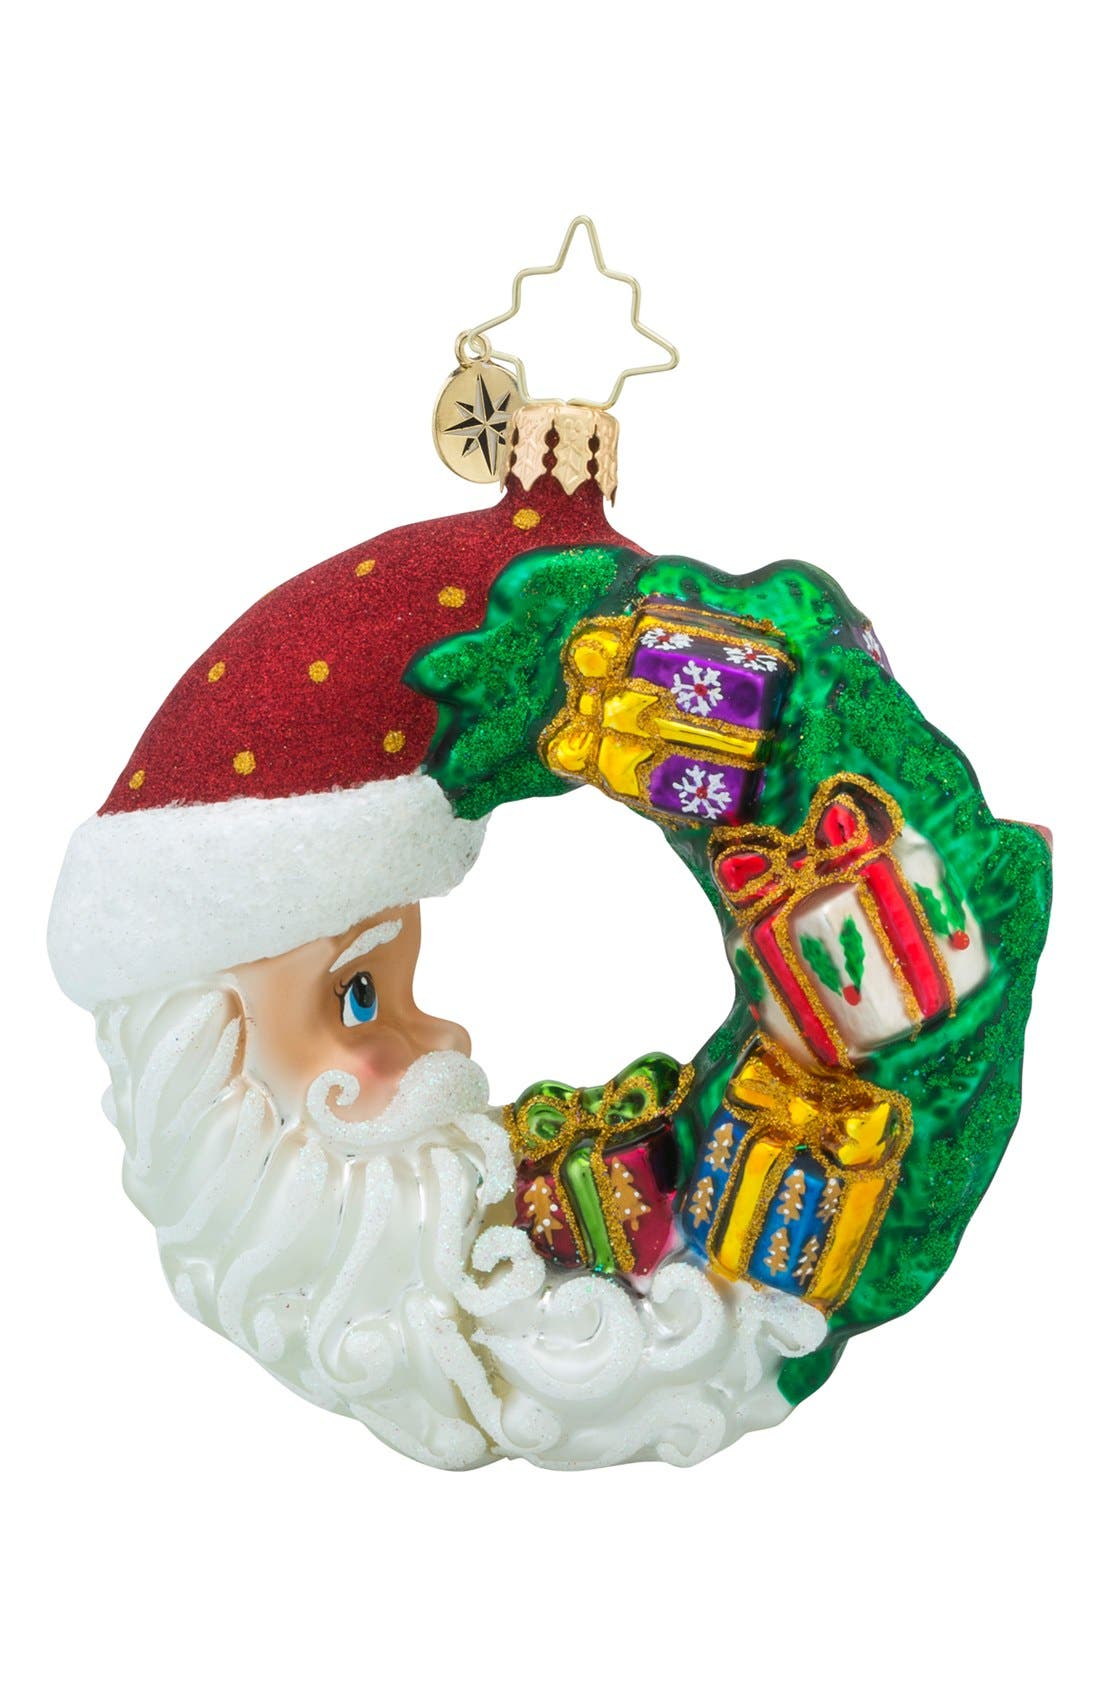 'Crescent Christmas' Santa Ornament,                             Main thumbnail 1, color,                             Green/ Multi